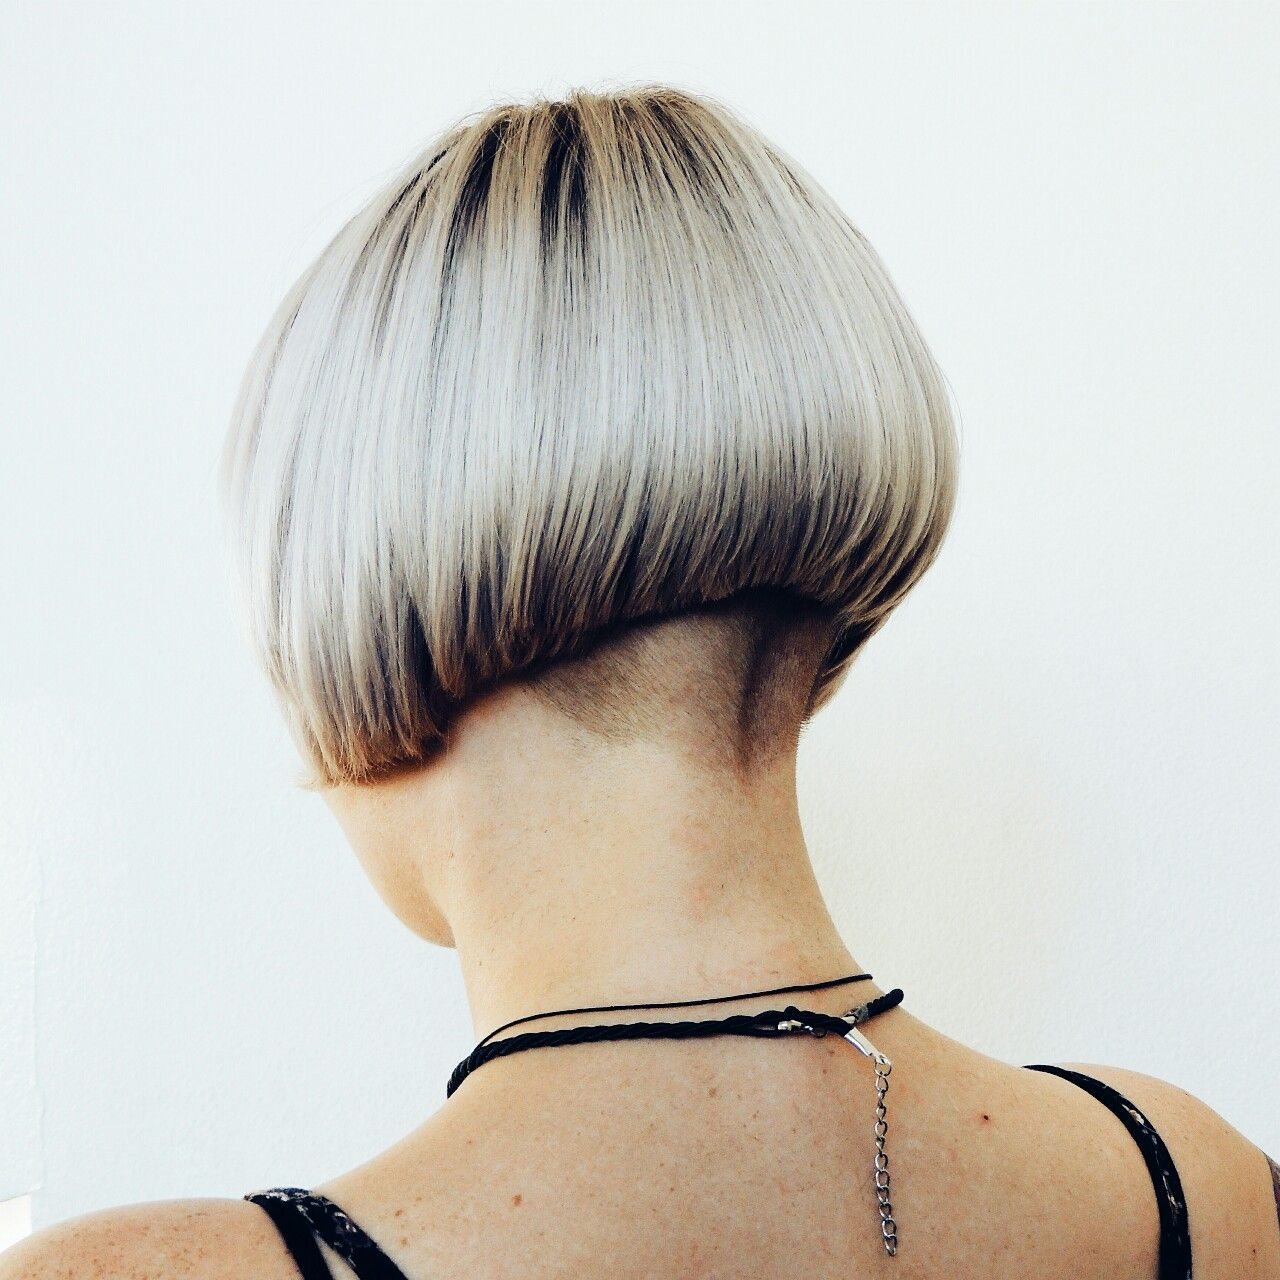 Curious Shaved bob haircut